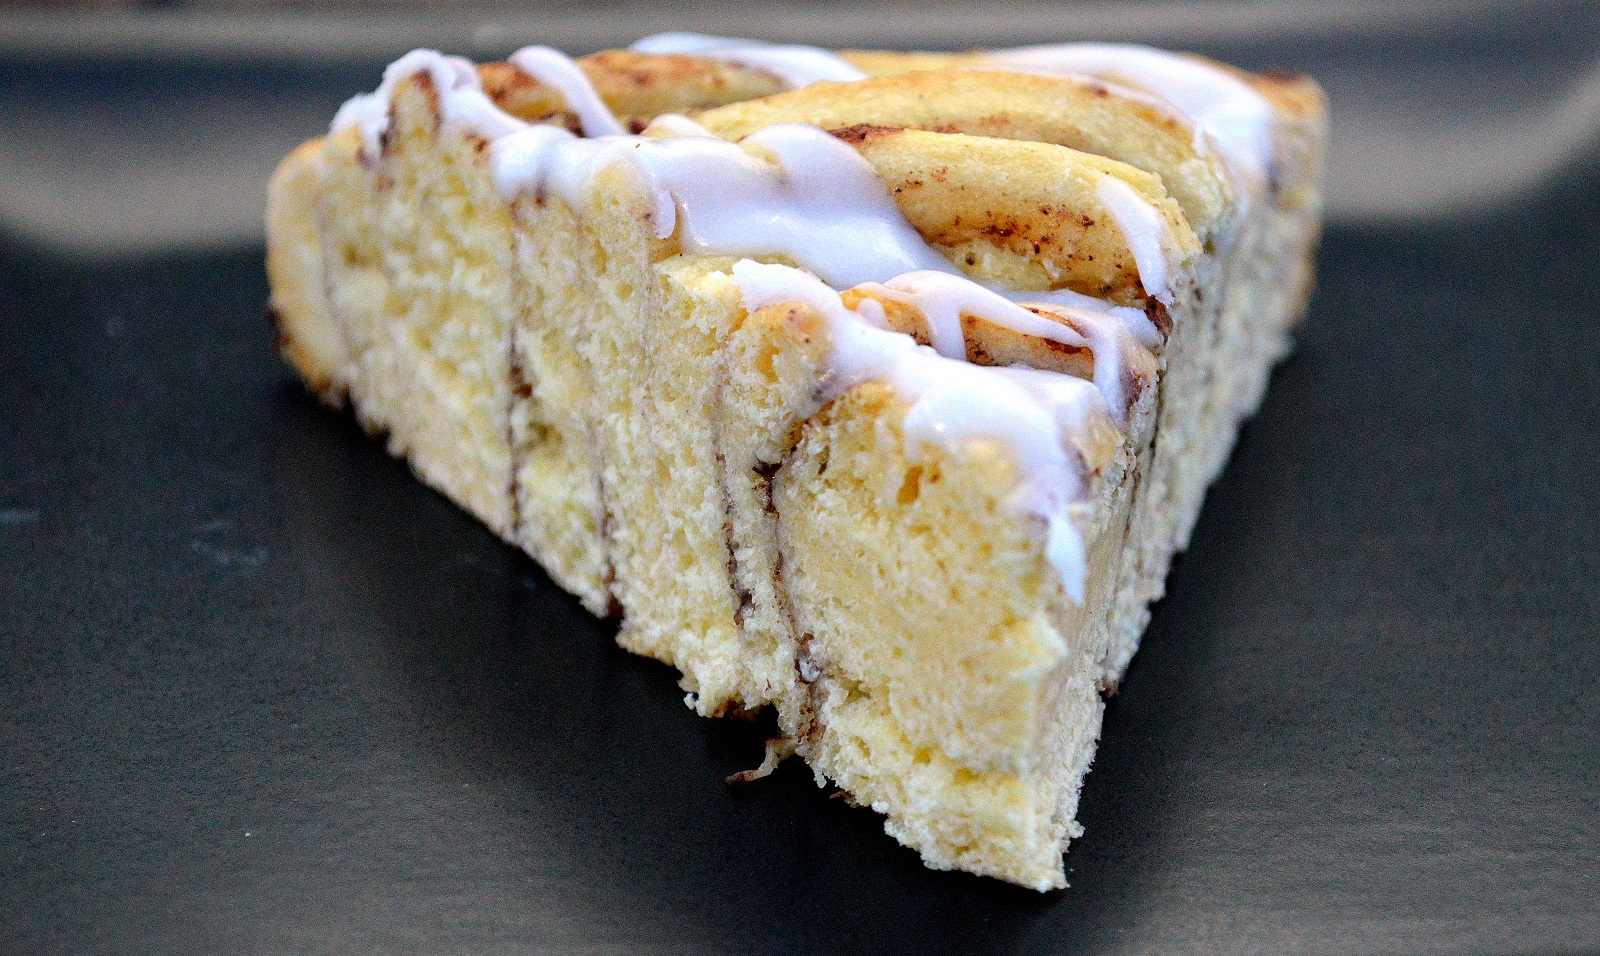 Cinnamon Bun Cake! Just pop the can, wrap, bake and ice!